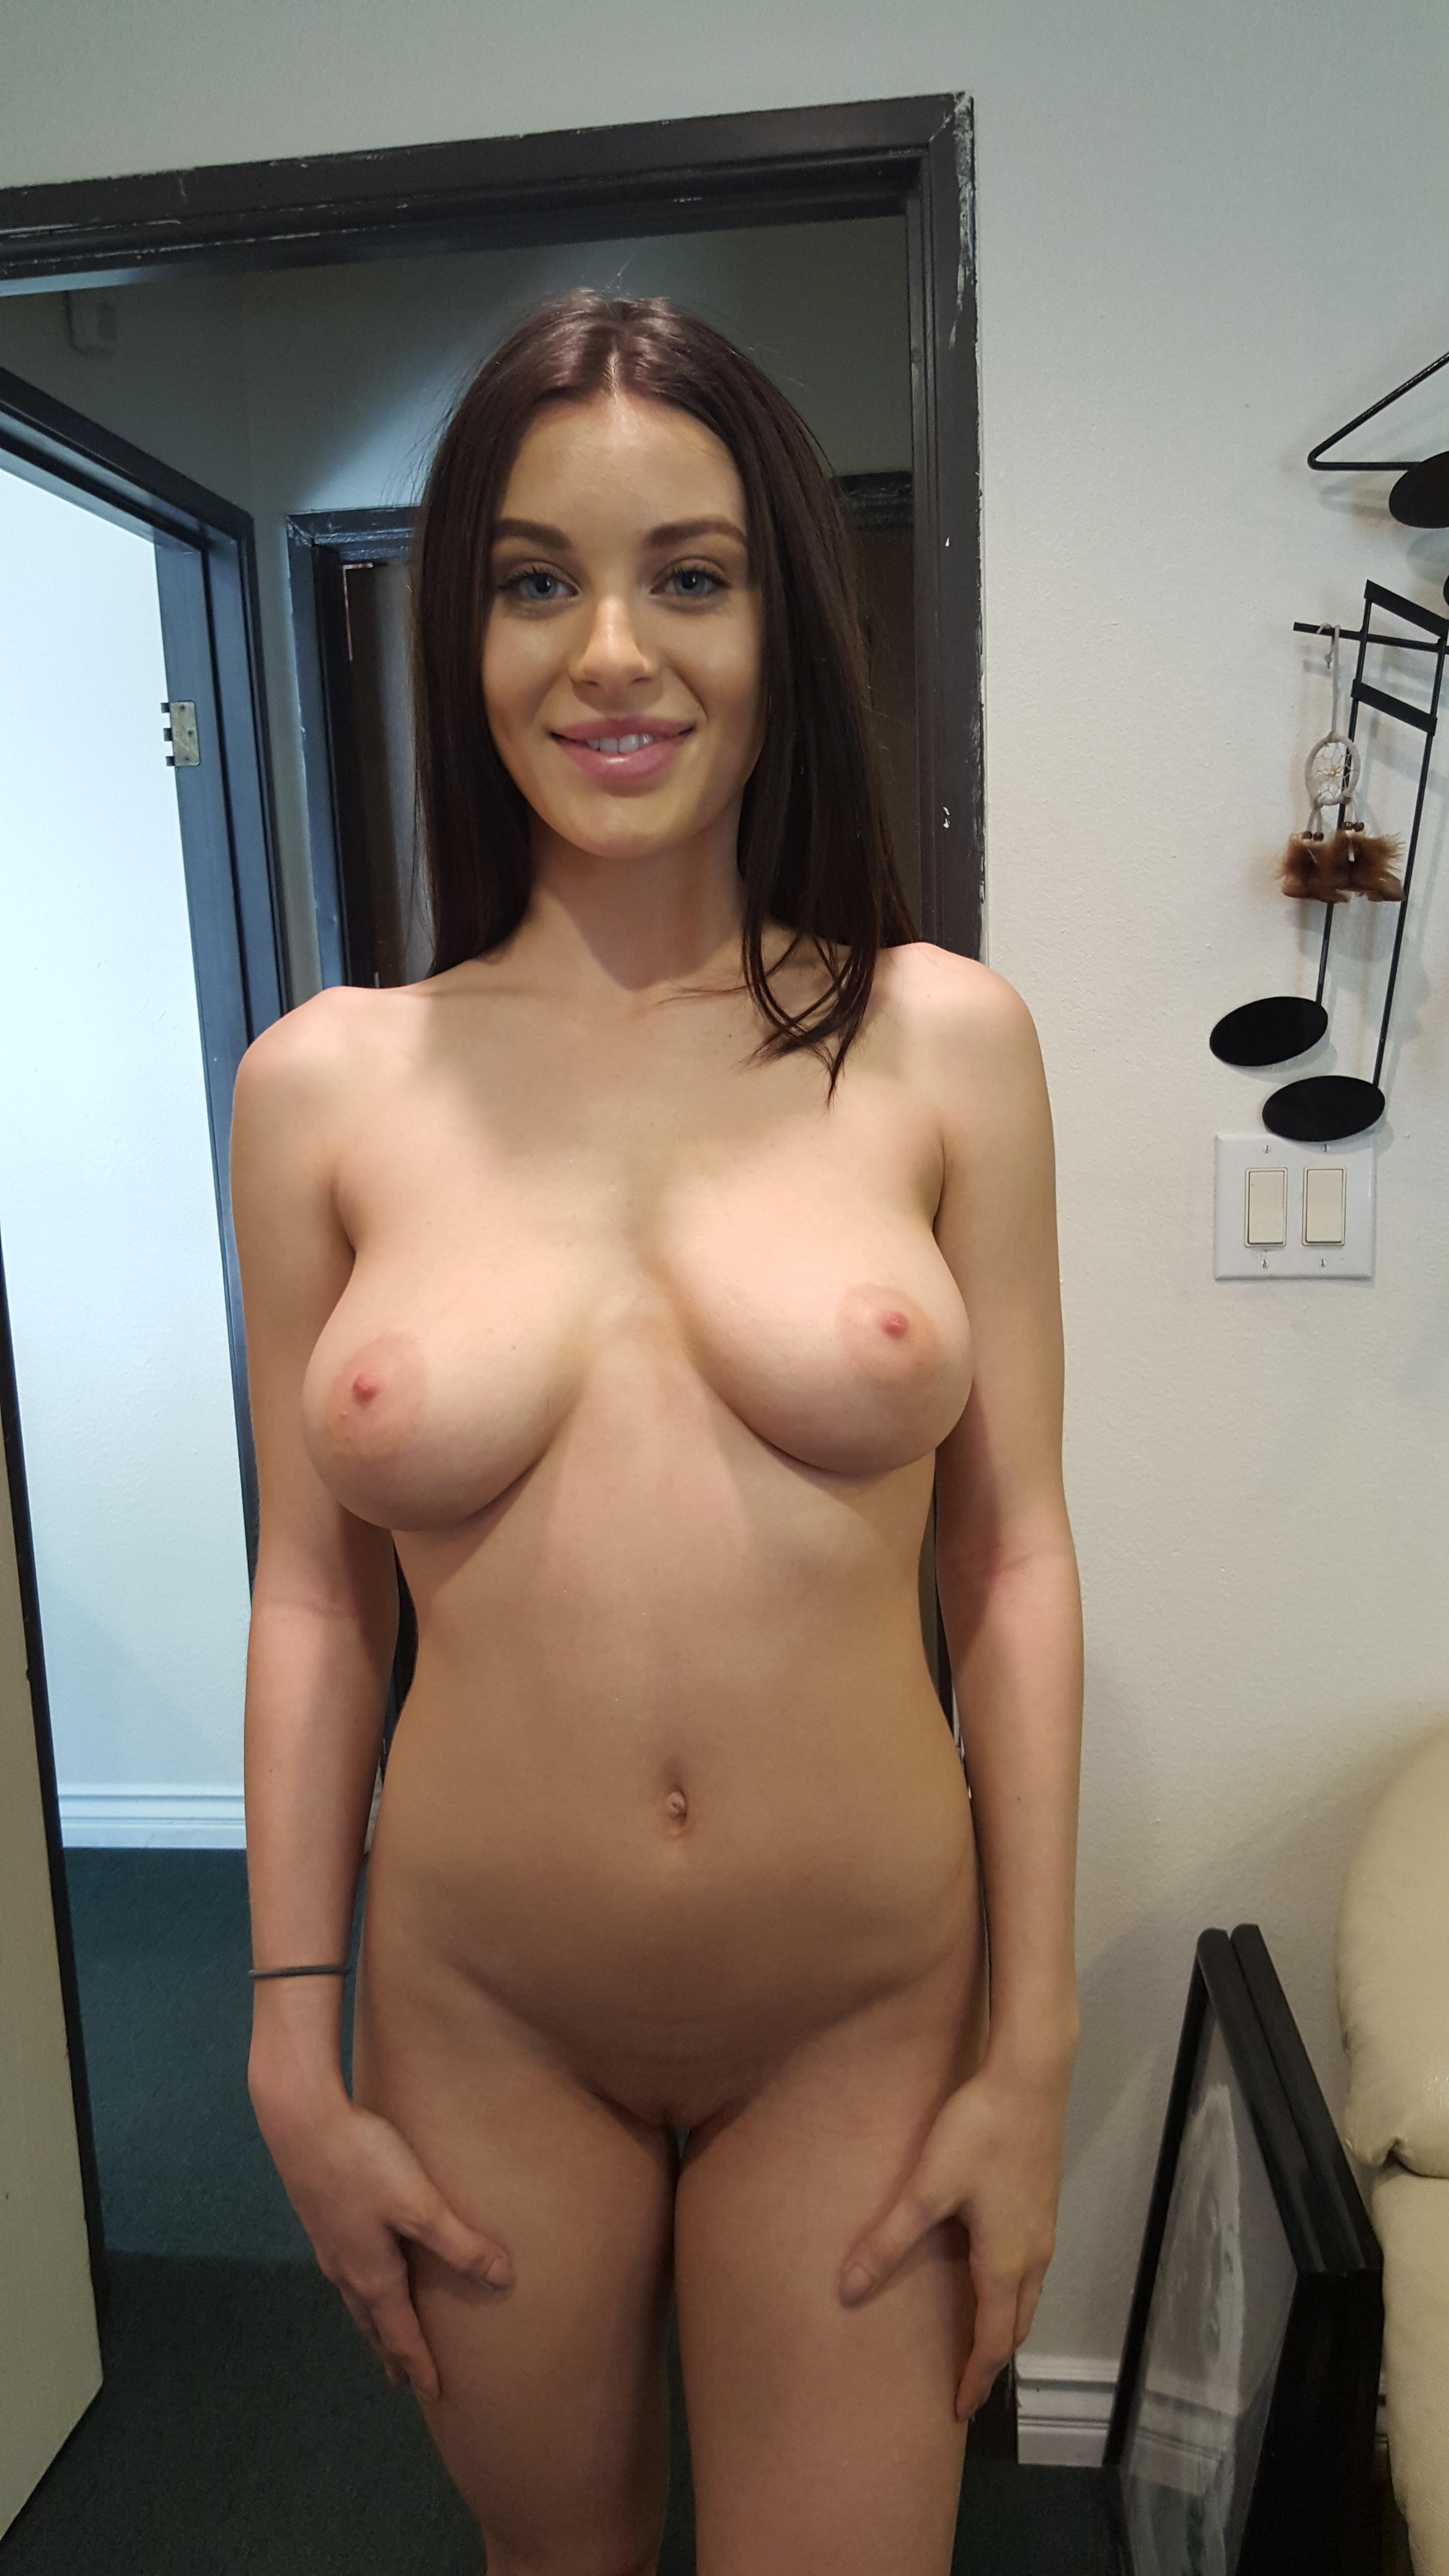 Lana Rhoades Nude Private Snap Chat - Sexy Now Nude Teens-9544